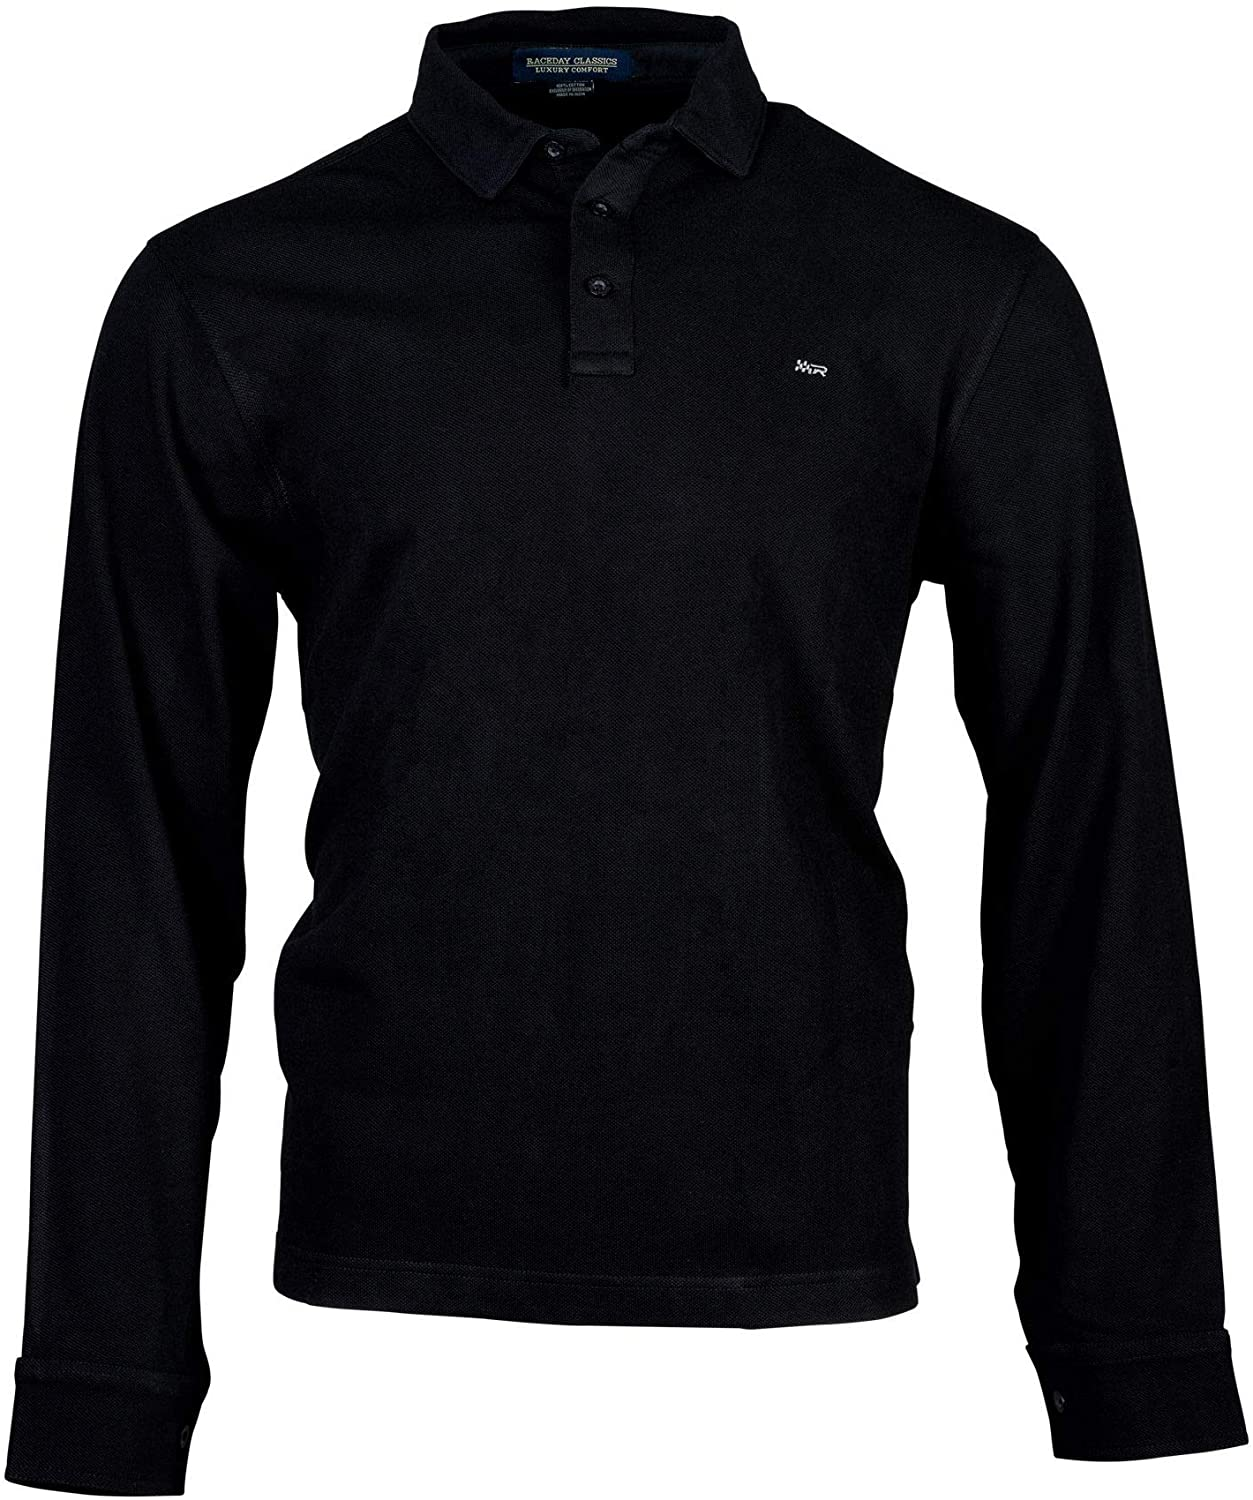 Raceday Classics Luxury Quality Polo with Perfect Collars, Long Sleeves, Regular Fit, Black Cotton Mesh